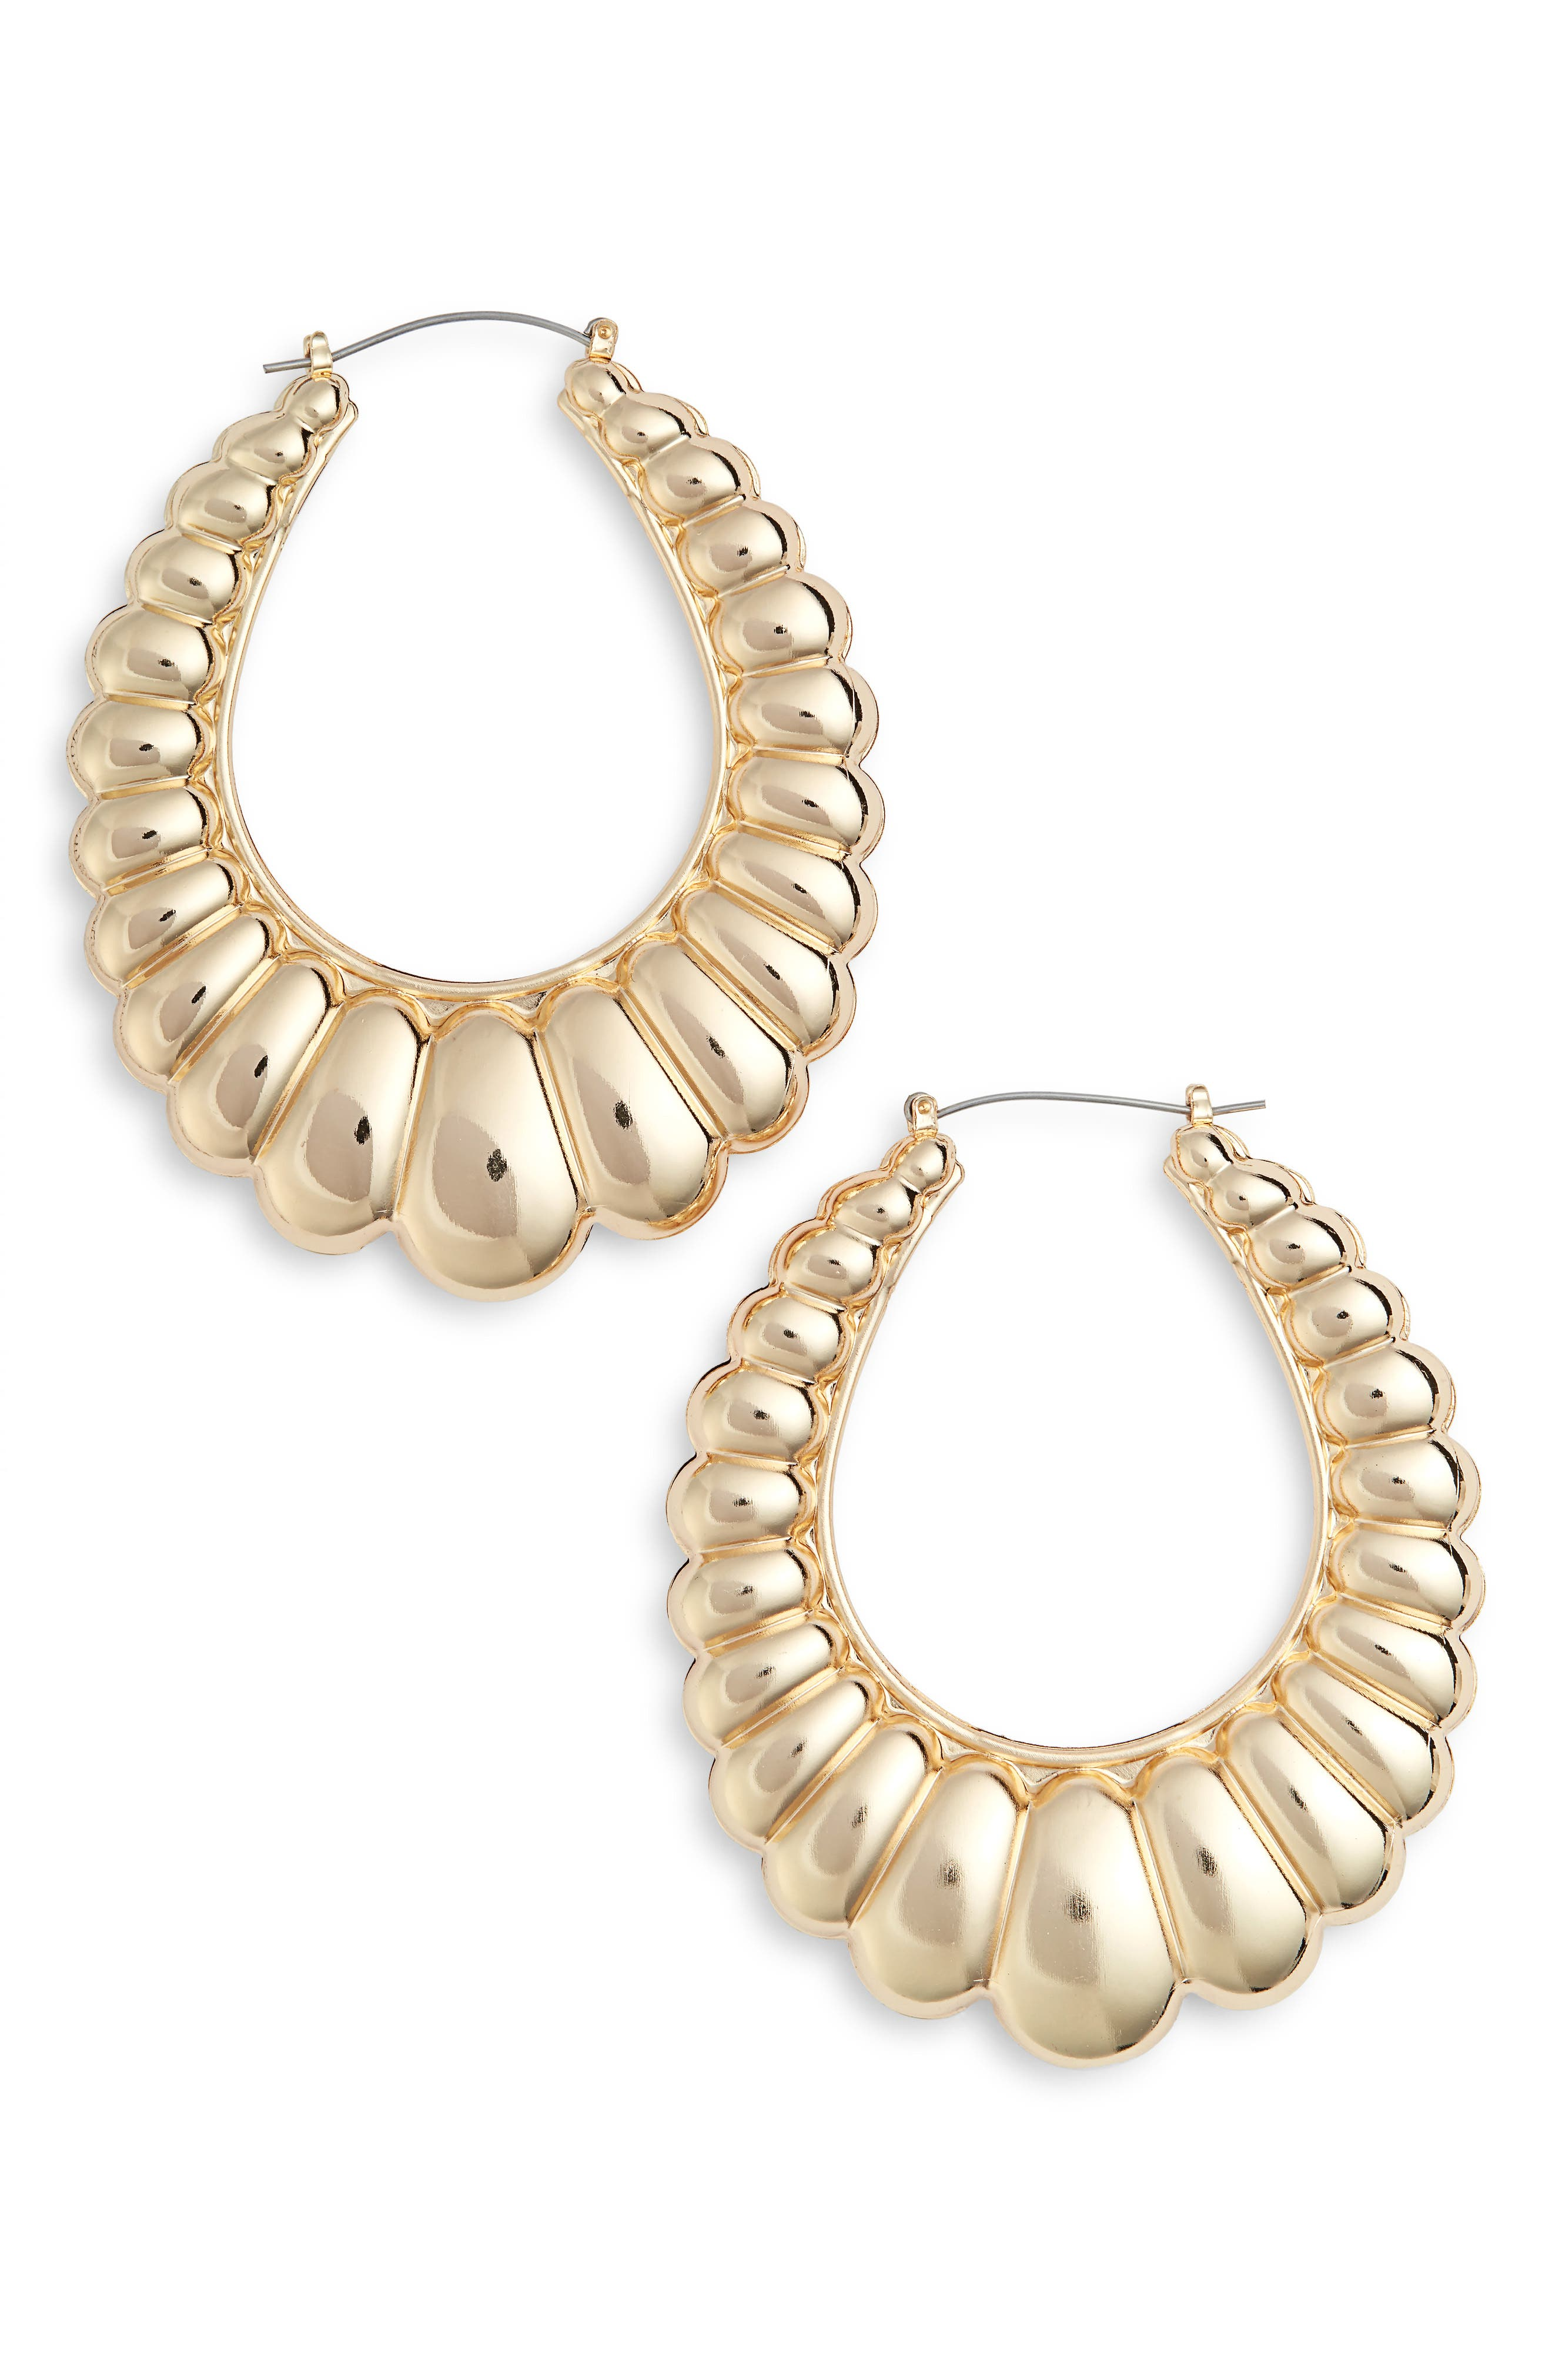 Scalloped Oval Hoop Earrings,                         Main,                         color, Gold